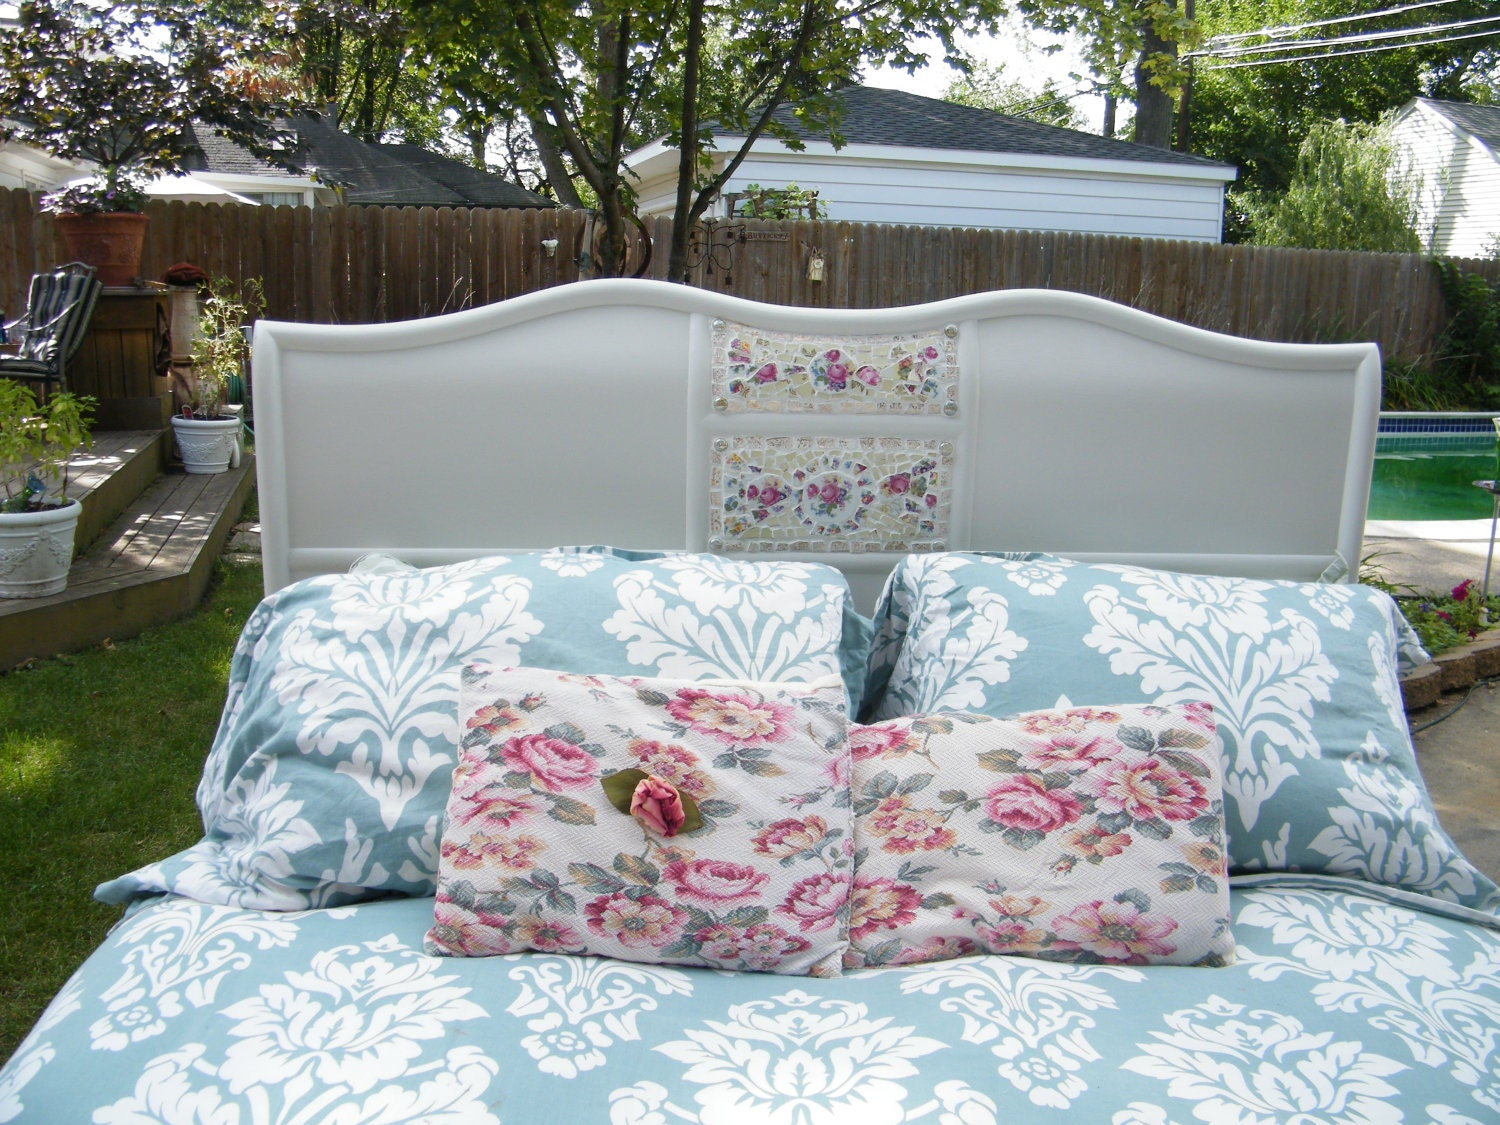 Queen Size Romantic Cottage/Shabby Chic Mosaic Headboard/ Footboard Reserved for Trelan